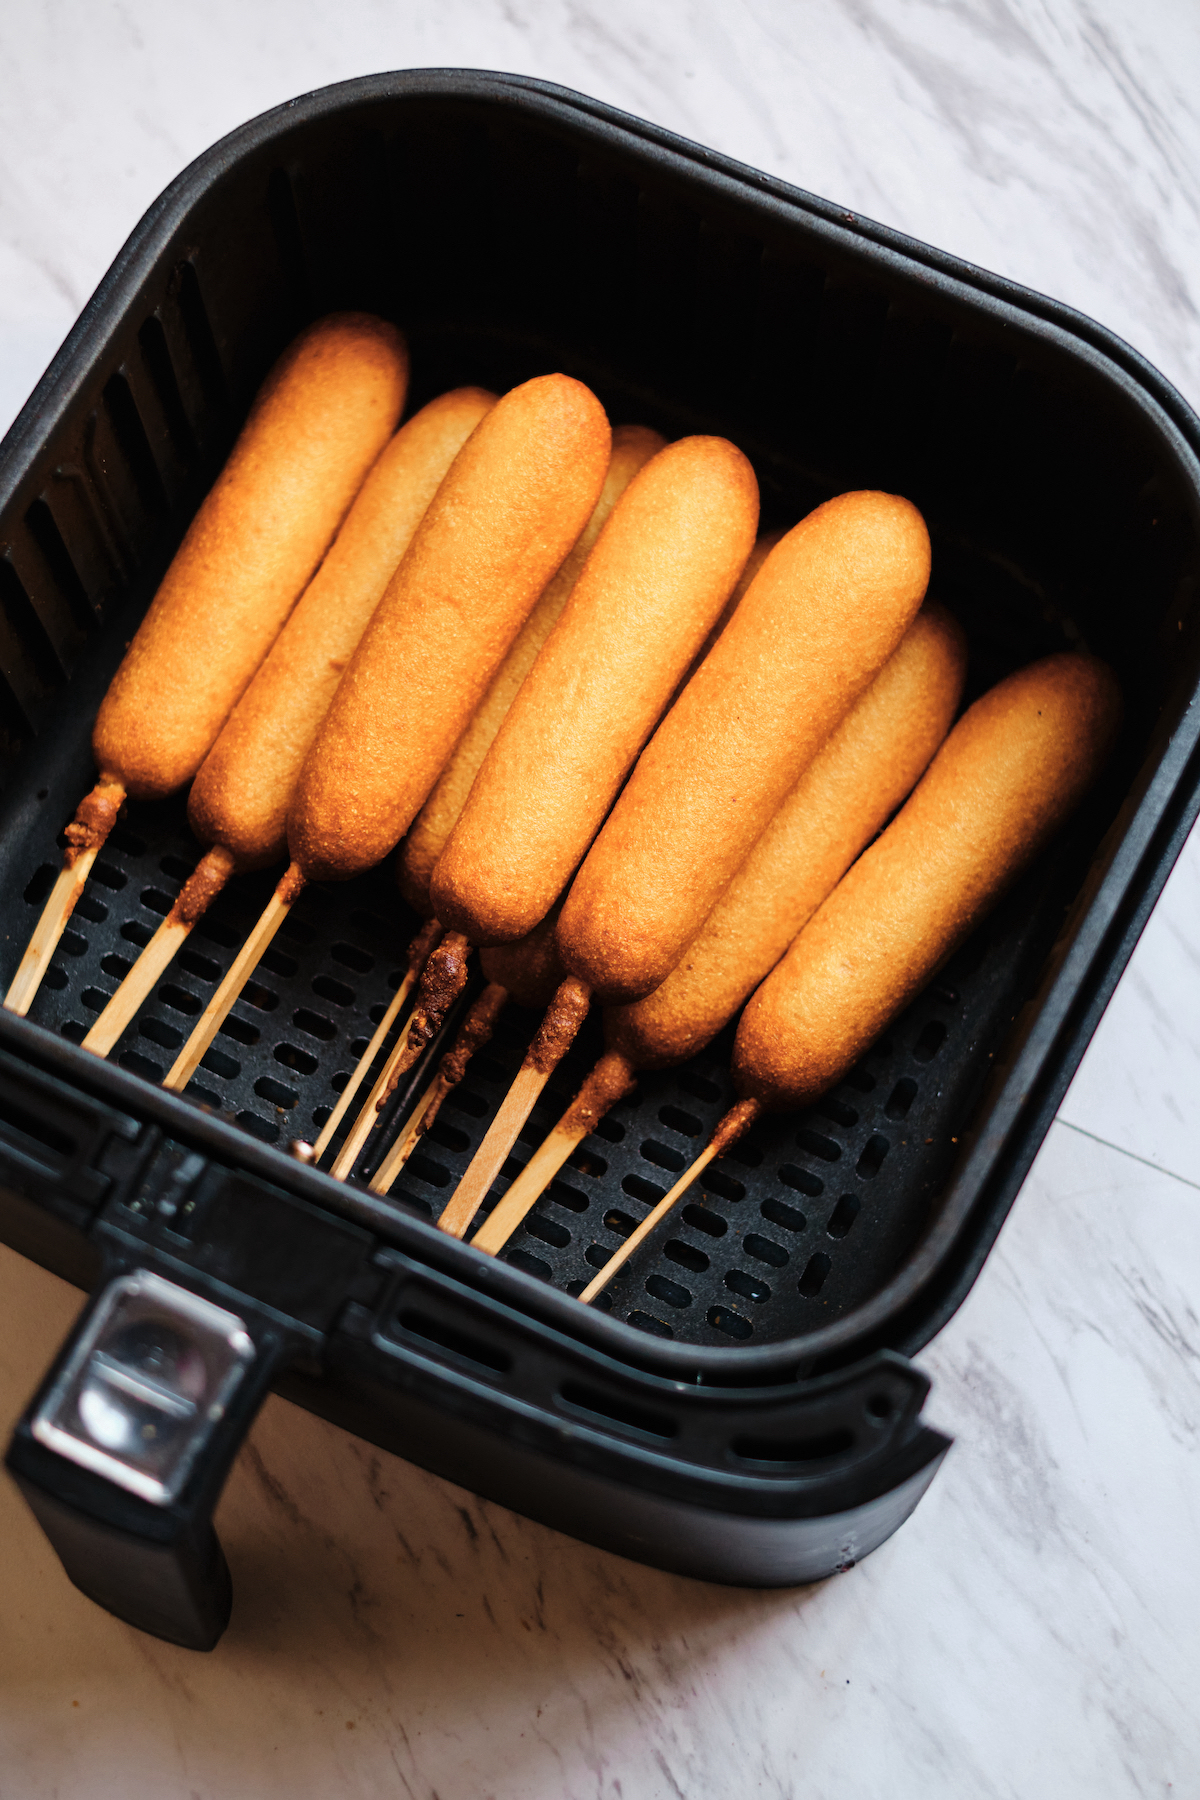 the finished air fryer frozen corn dogs inside the air fryer basket